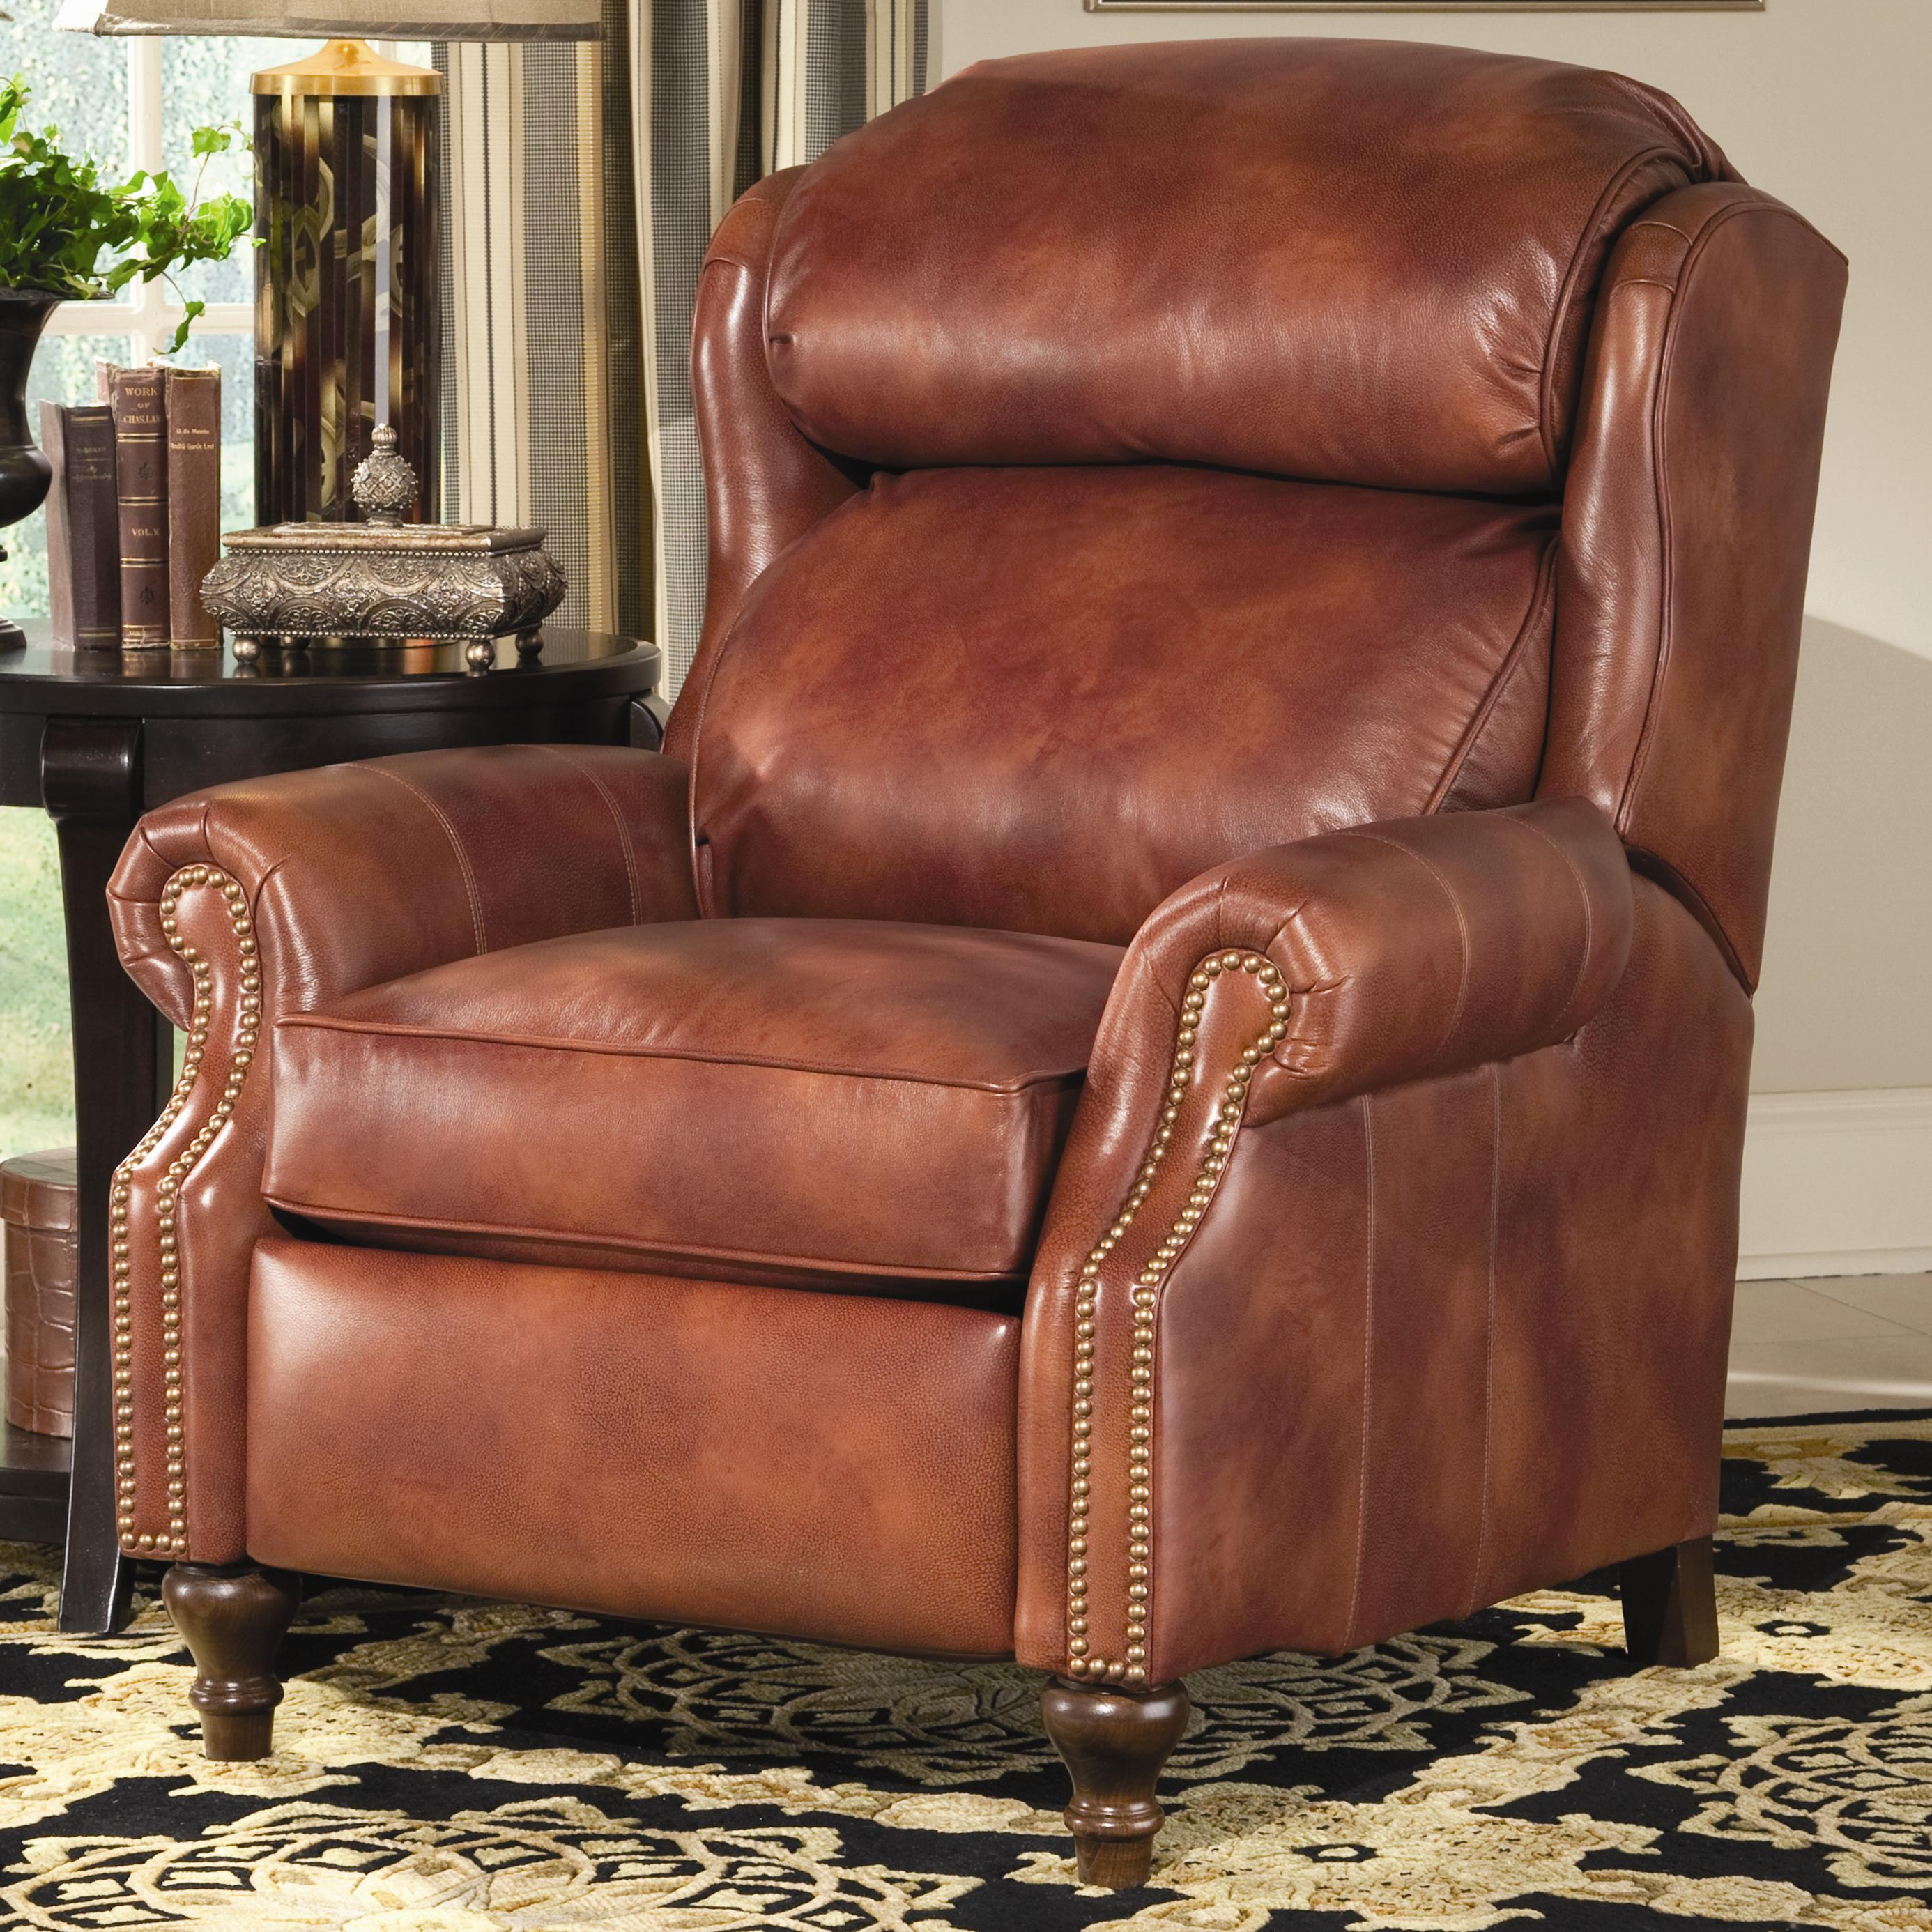 brothers wide big recliners best motorized smith chair recliner with reclining man and trim tall